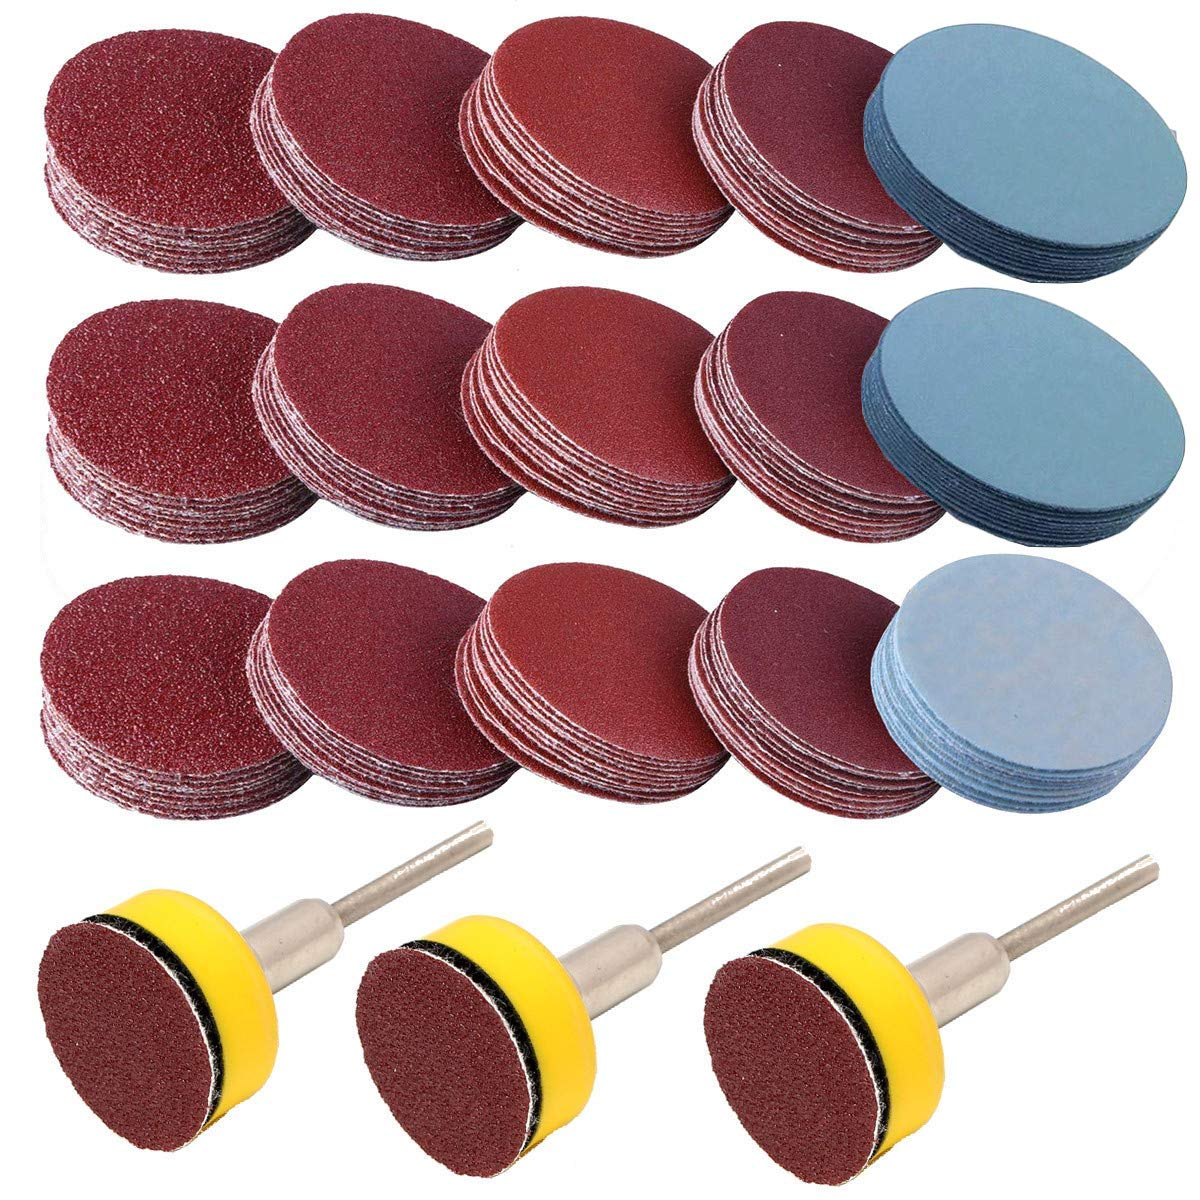 300PCS Sanding Discs Backing Pads, VÉZAAR 1 inch Hook and Look Grinding Discs with Sticker Backer Plate 1/8 inch Shank of 80 120 140 400 600 1000 1500 3000 5000 Grit